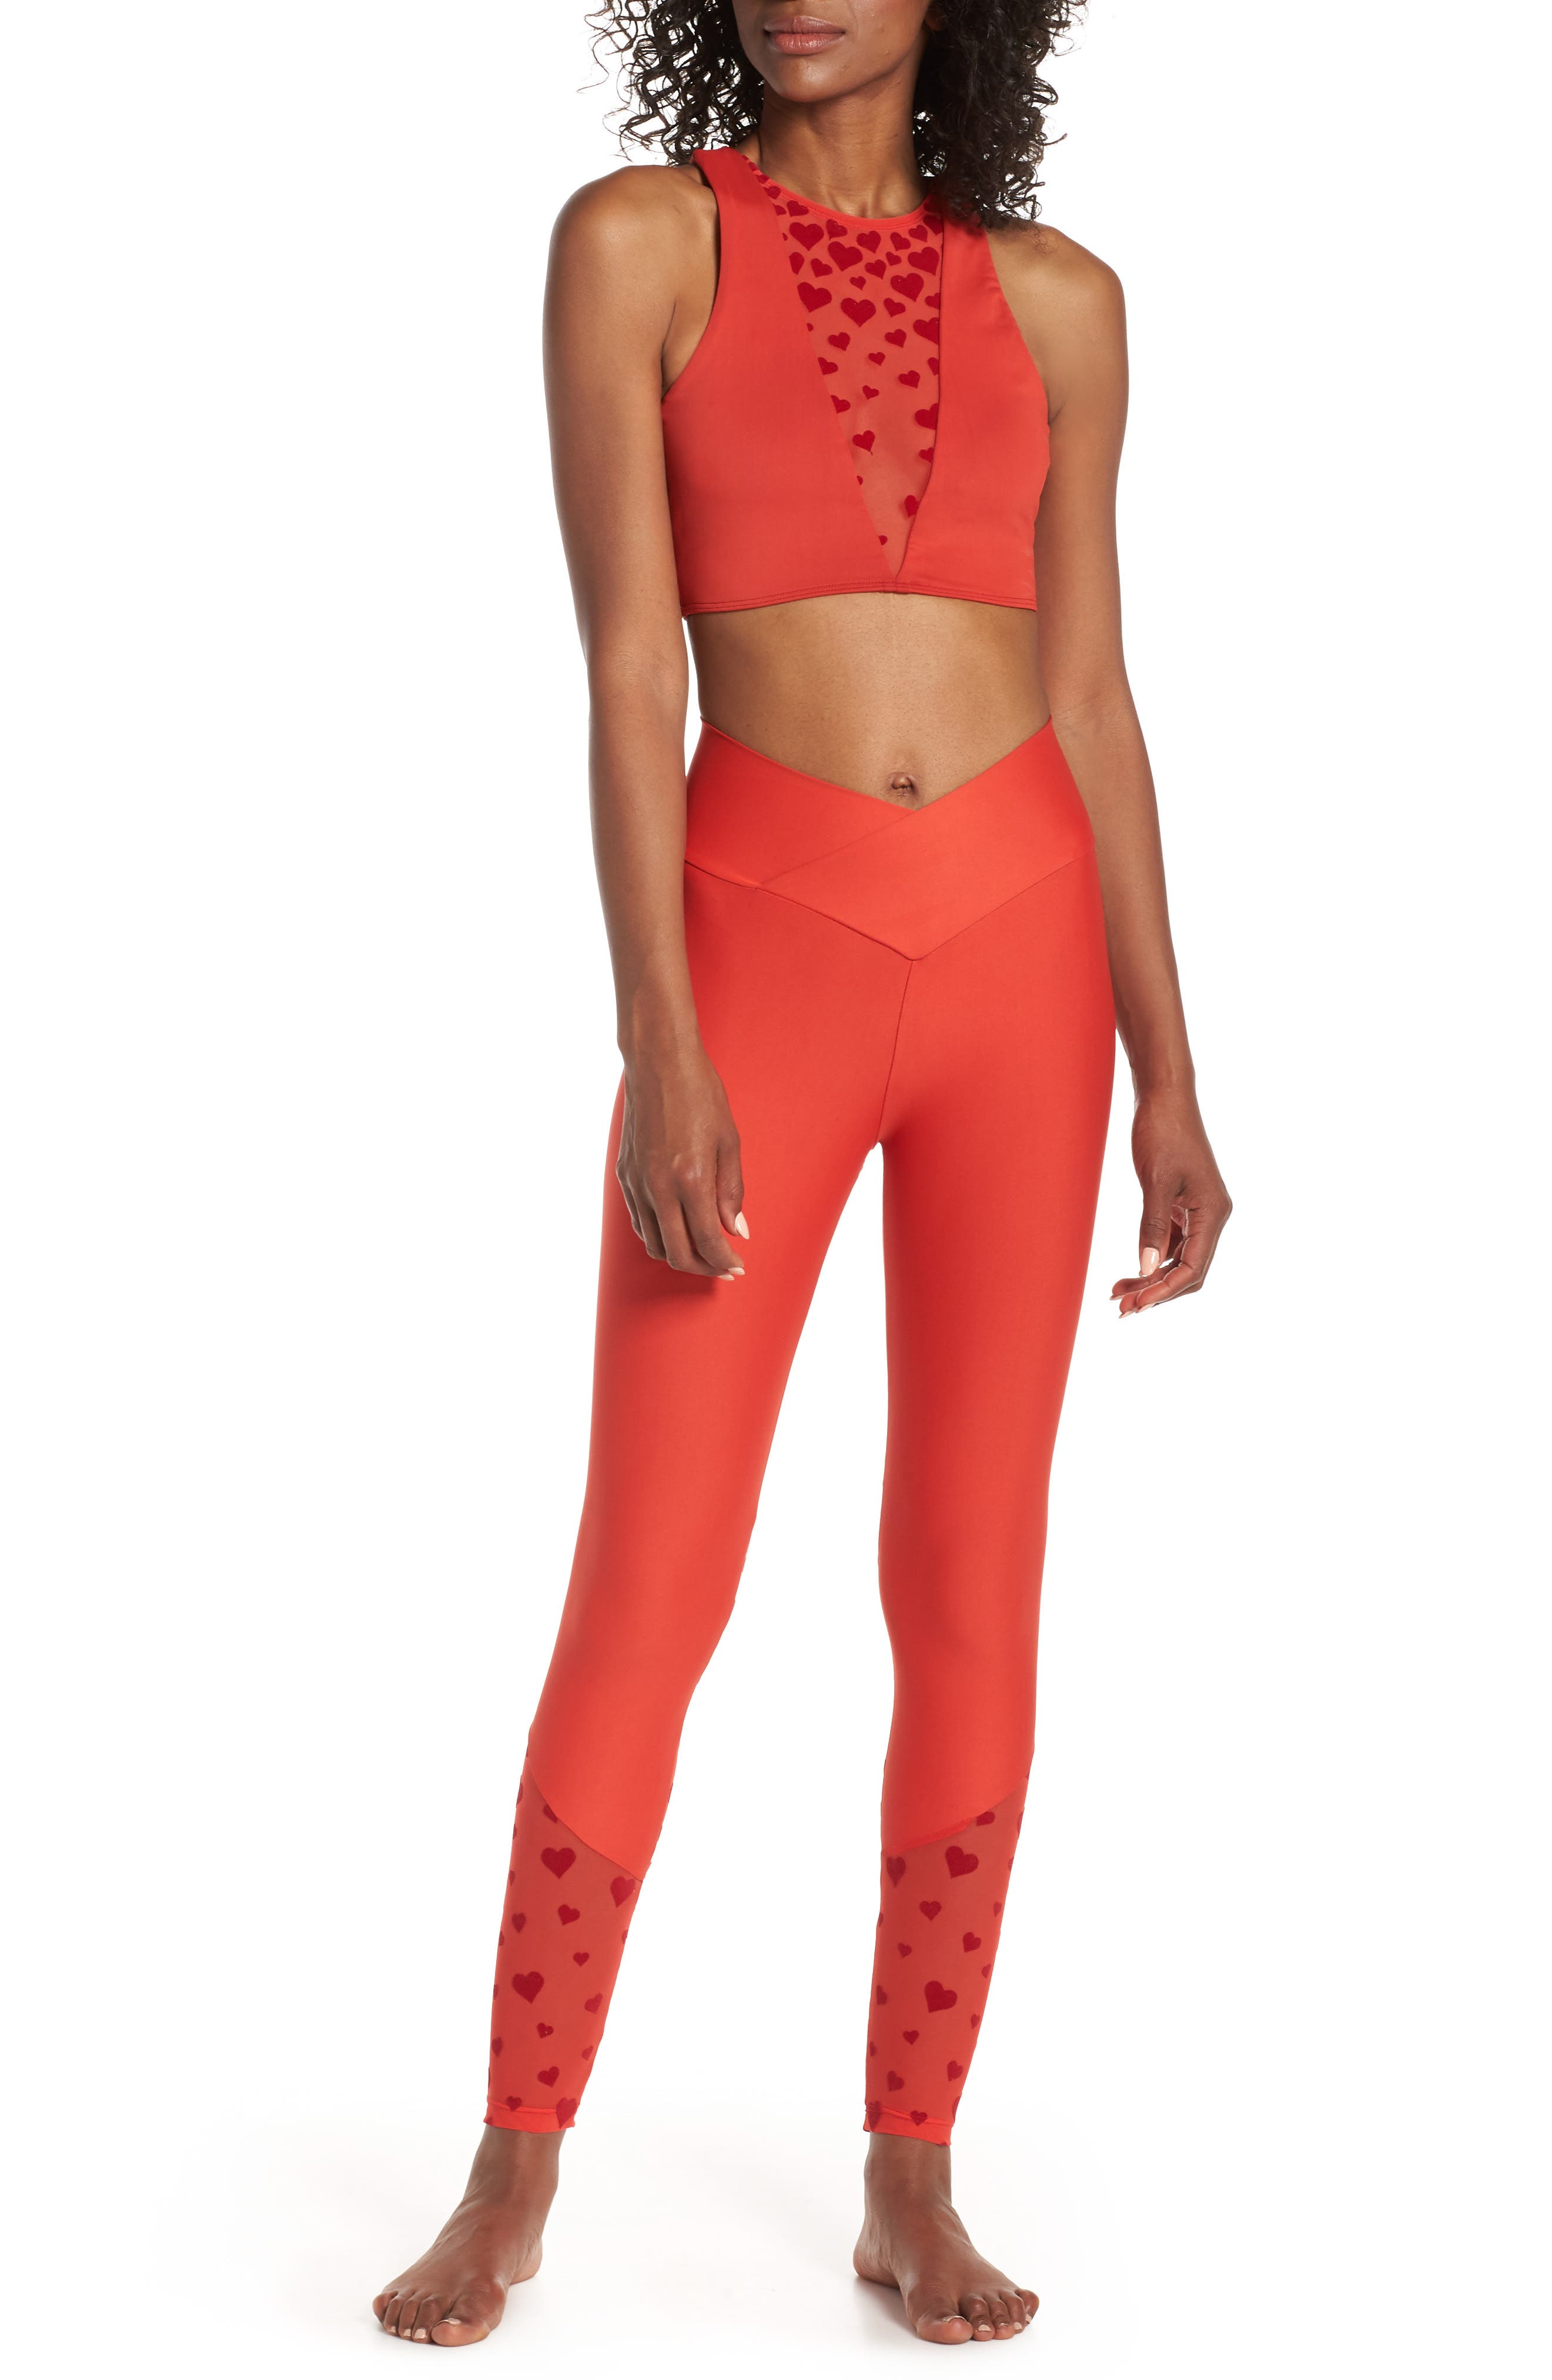 BEACH RIOT,                             Beach Leggings,                             Alternate thumbnail 8, color,                             RED HEART